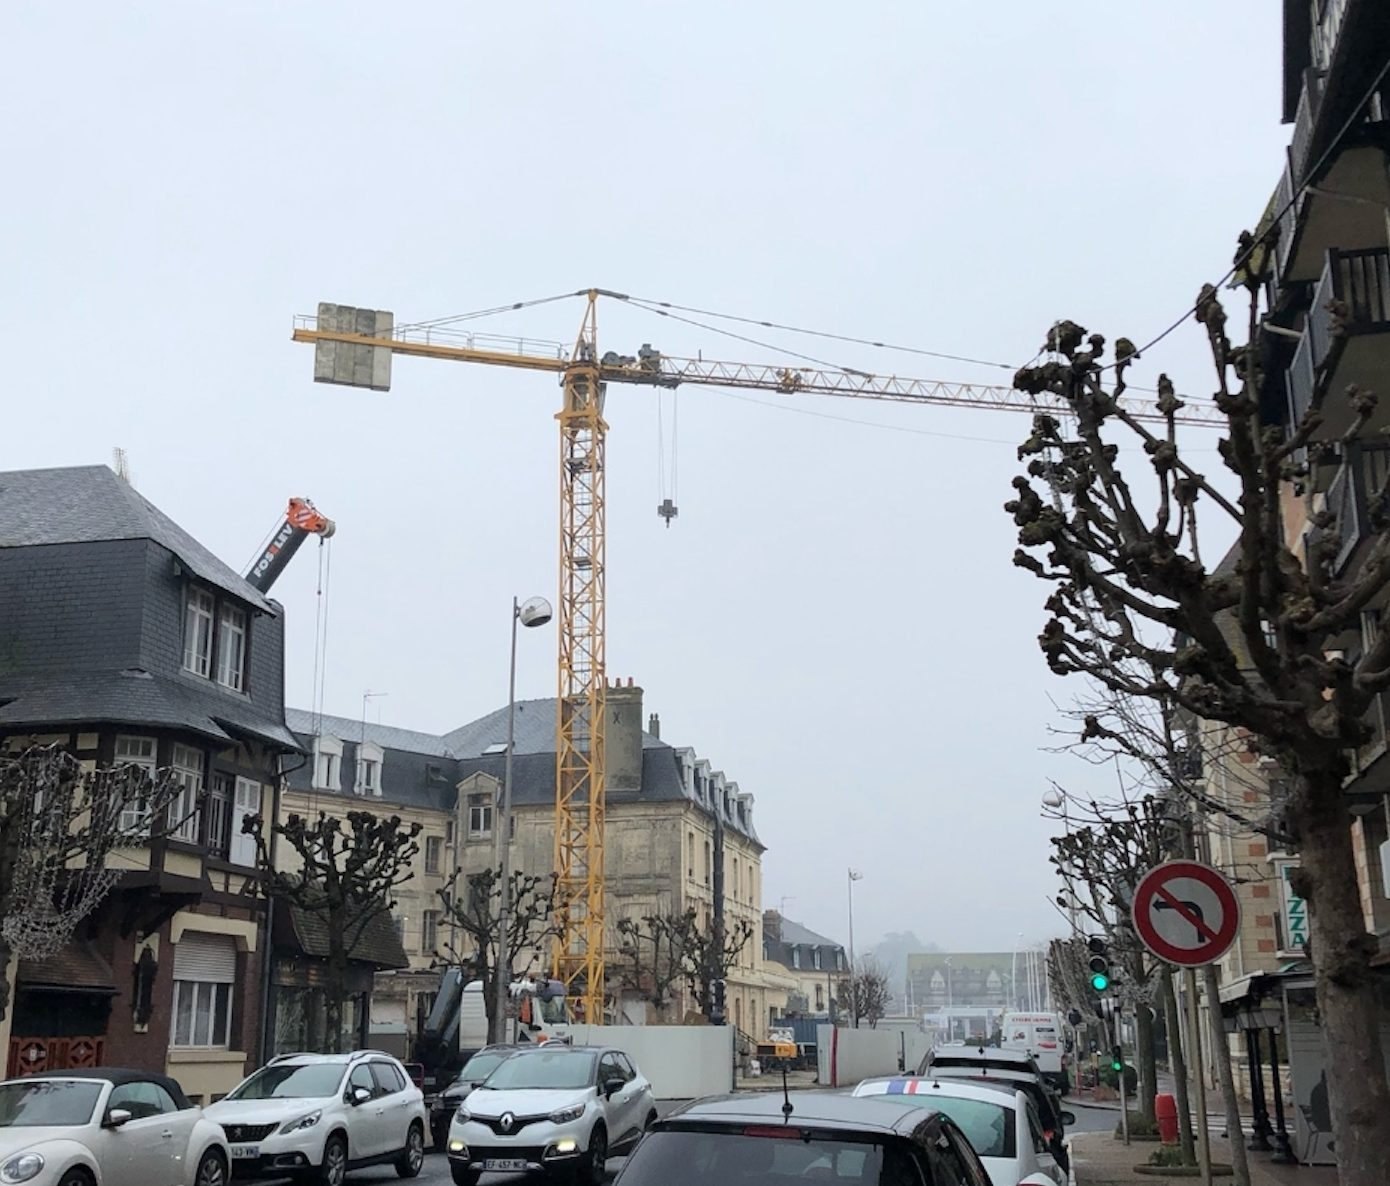 Grue Deauville Hotel You DNS Dupont Nicolay Architectes